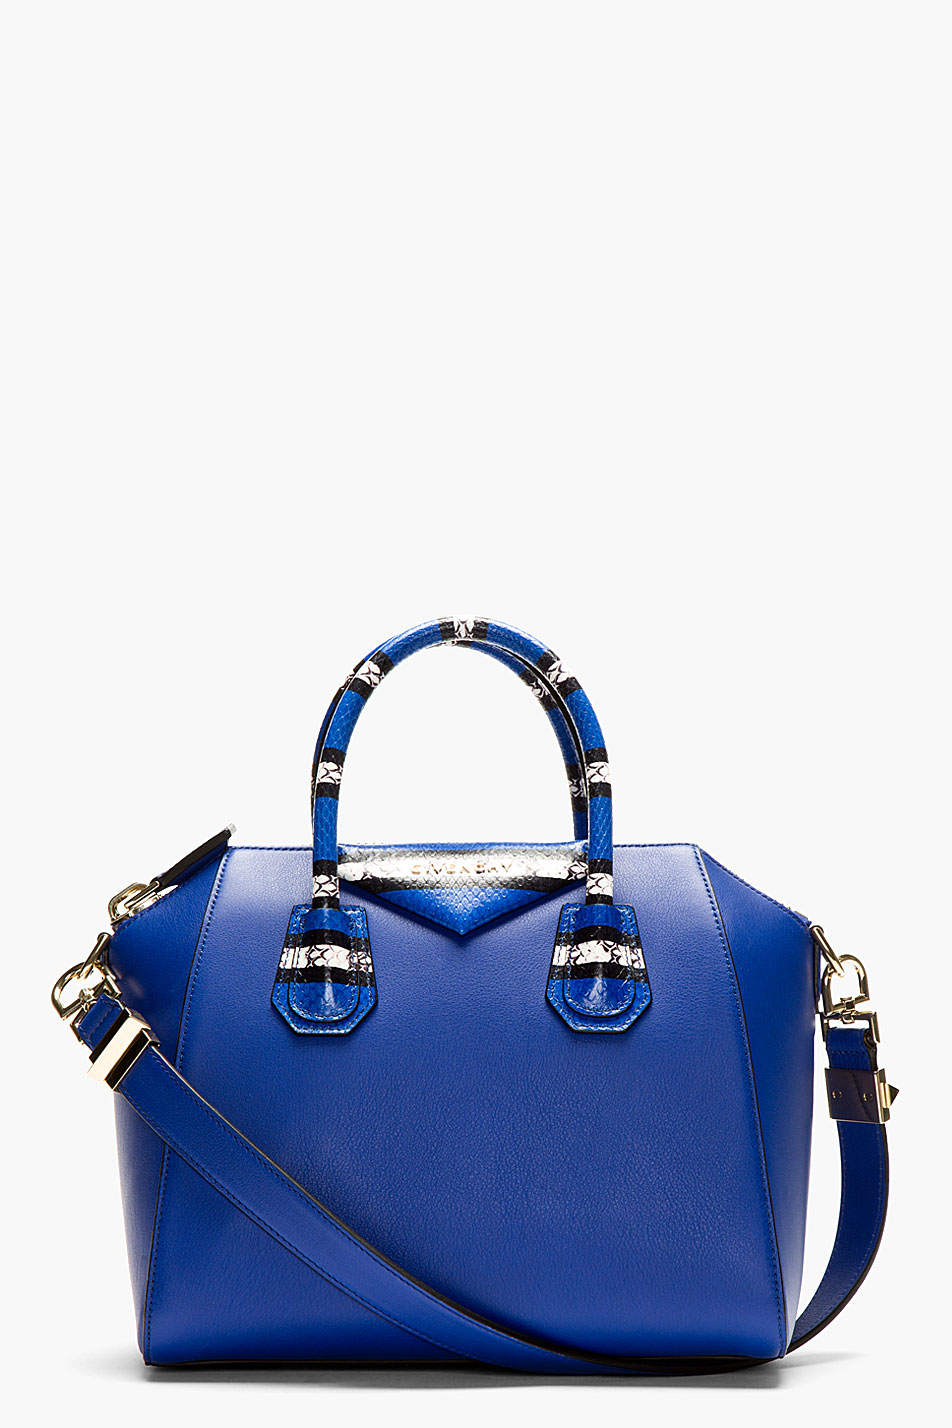 Givenchy Blue Leather Antigona Small Duffle Bag in Blue